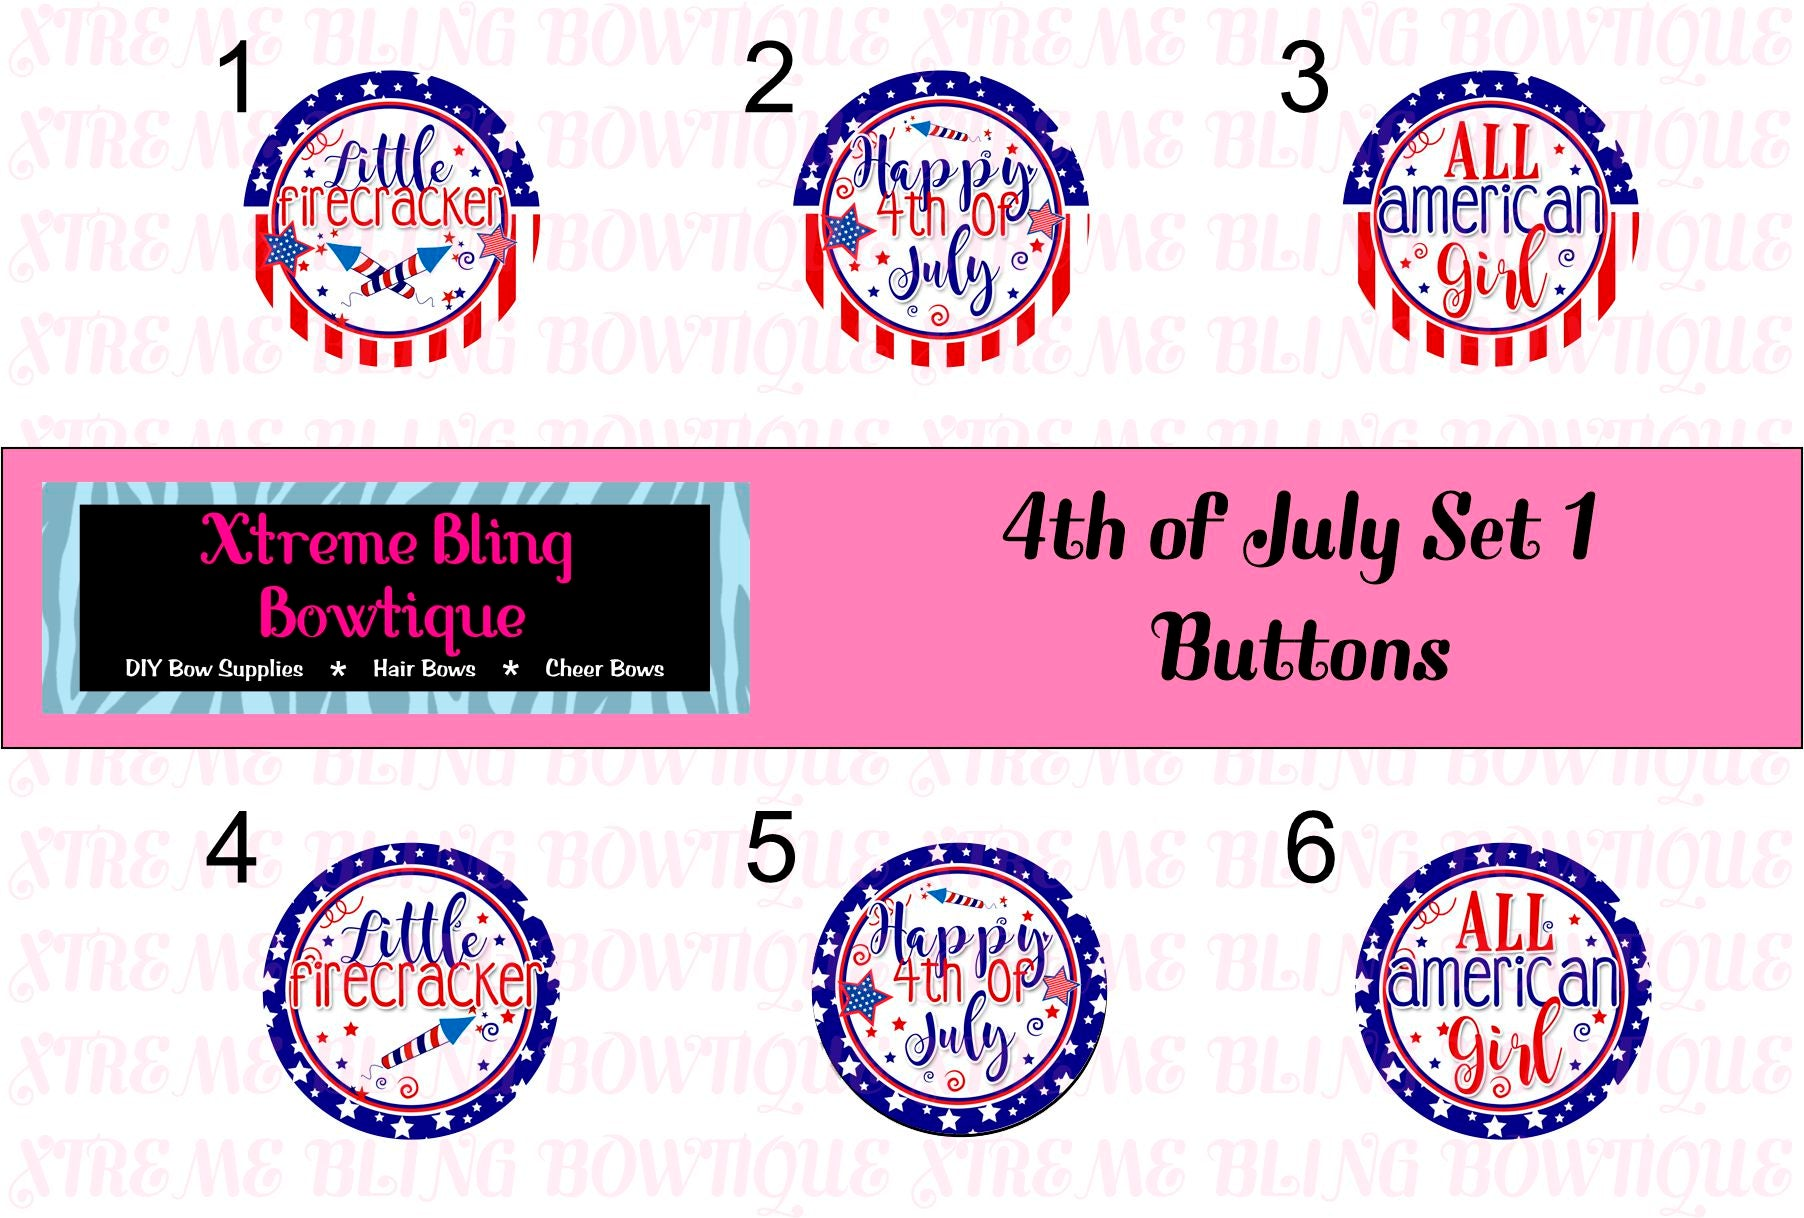 4th of July Set 1 Button Flat Back, Pin Back, Magnet or Bottle Cap